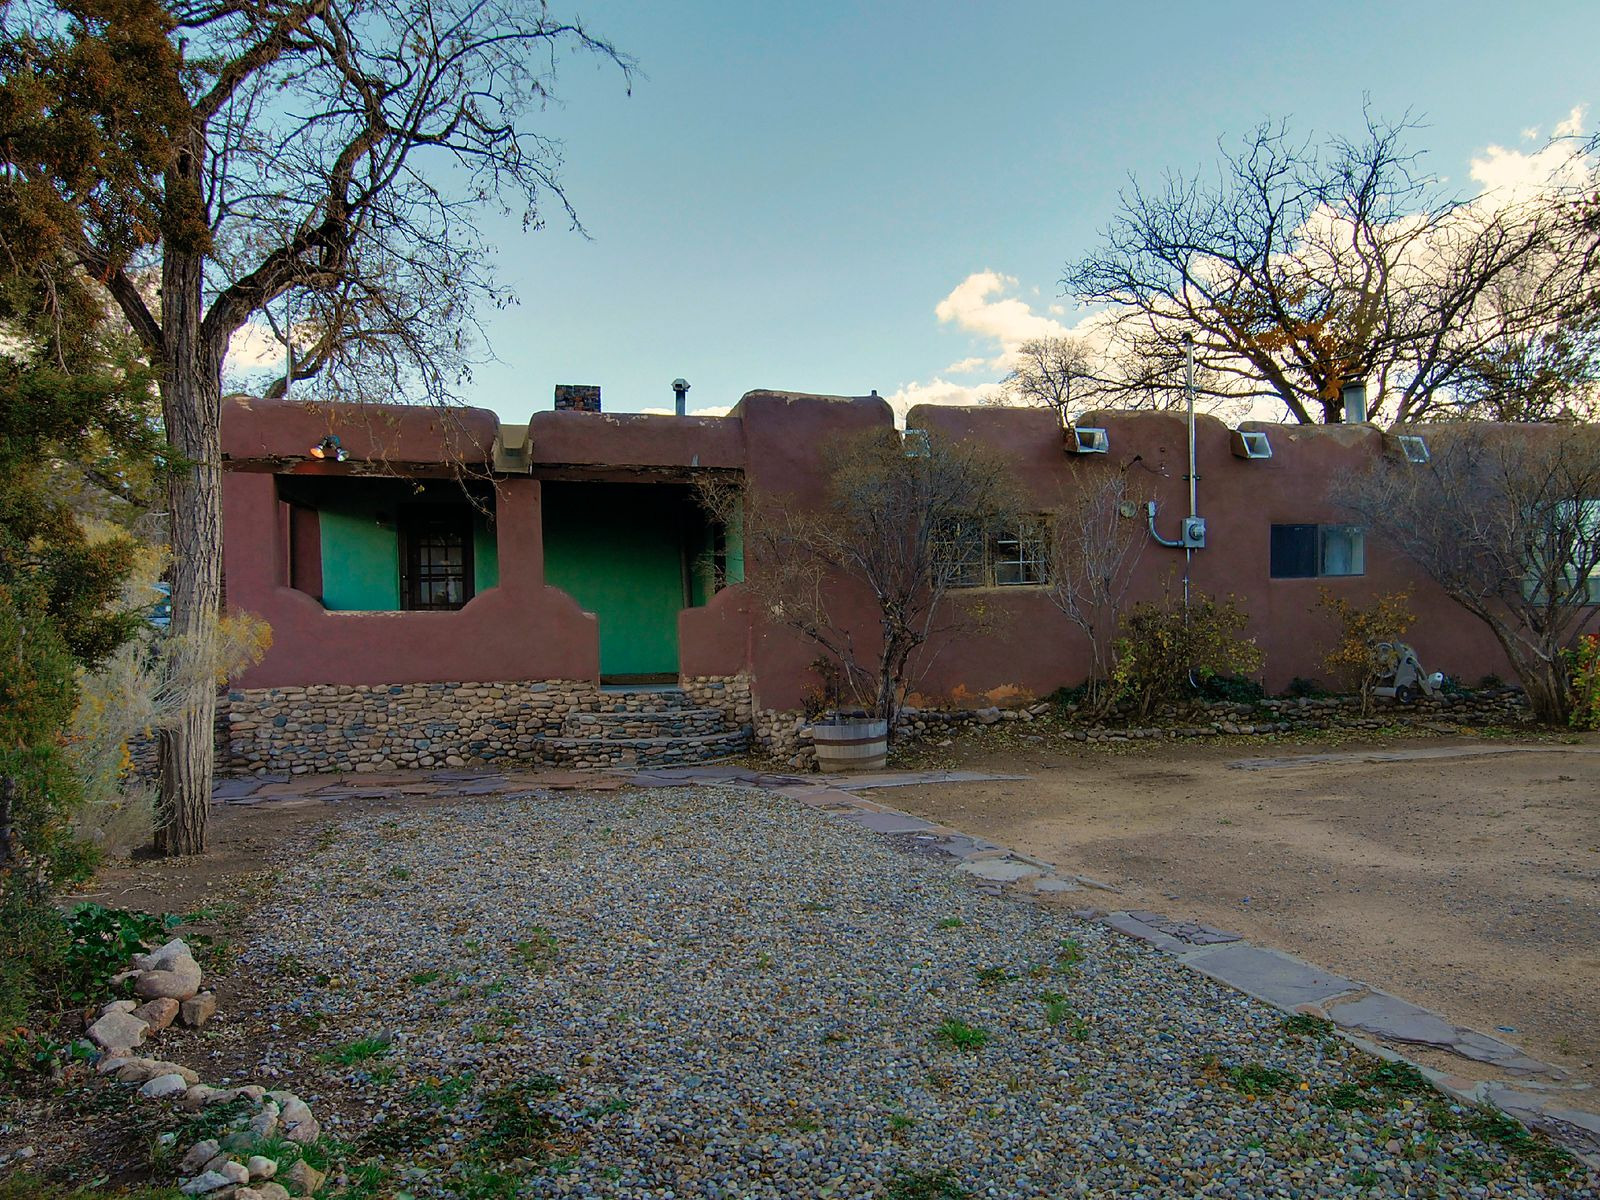 816 Old Santa Fe Trail, Santa Fe NM Single Family Home - Santa Fe Real Estate